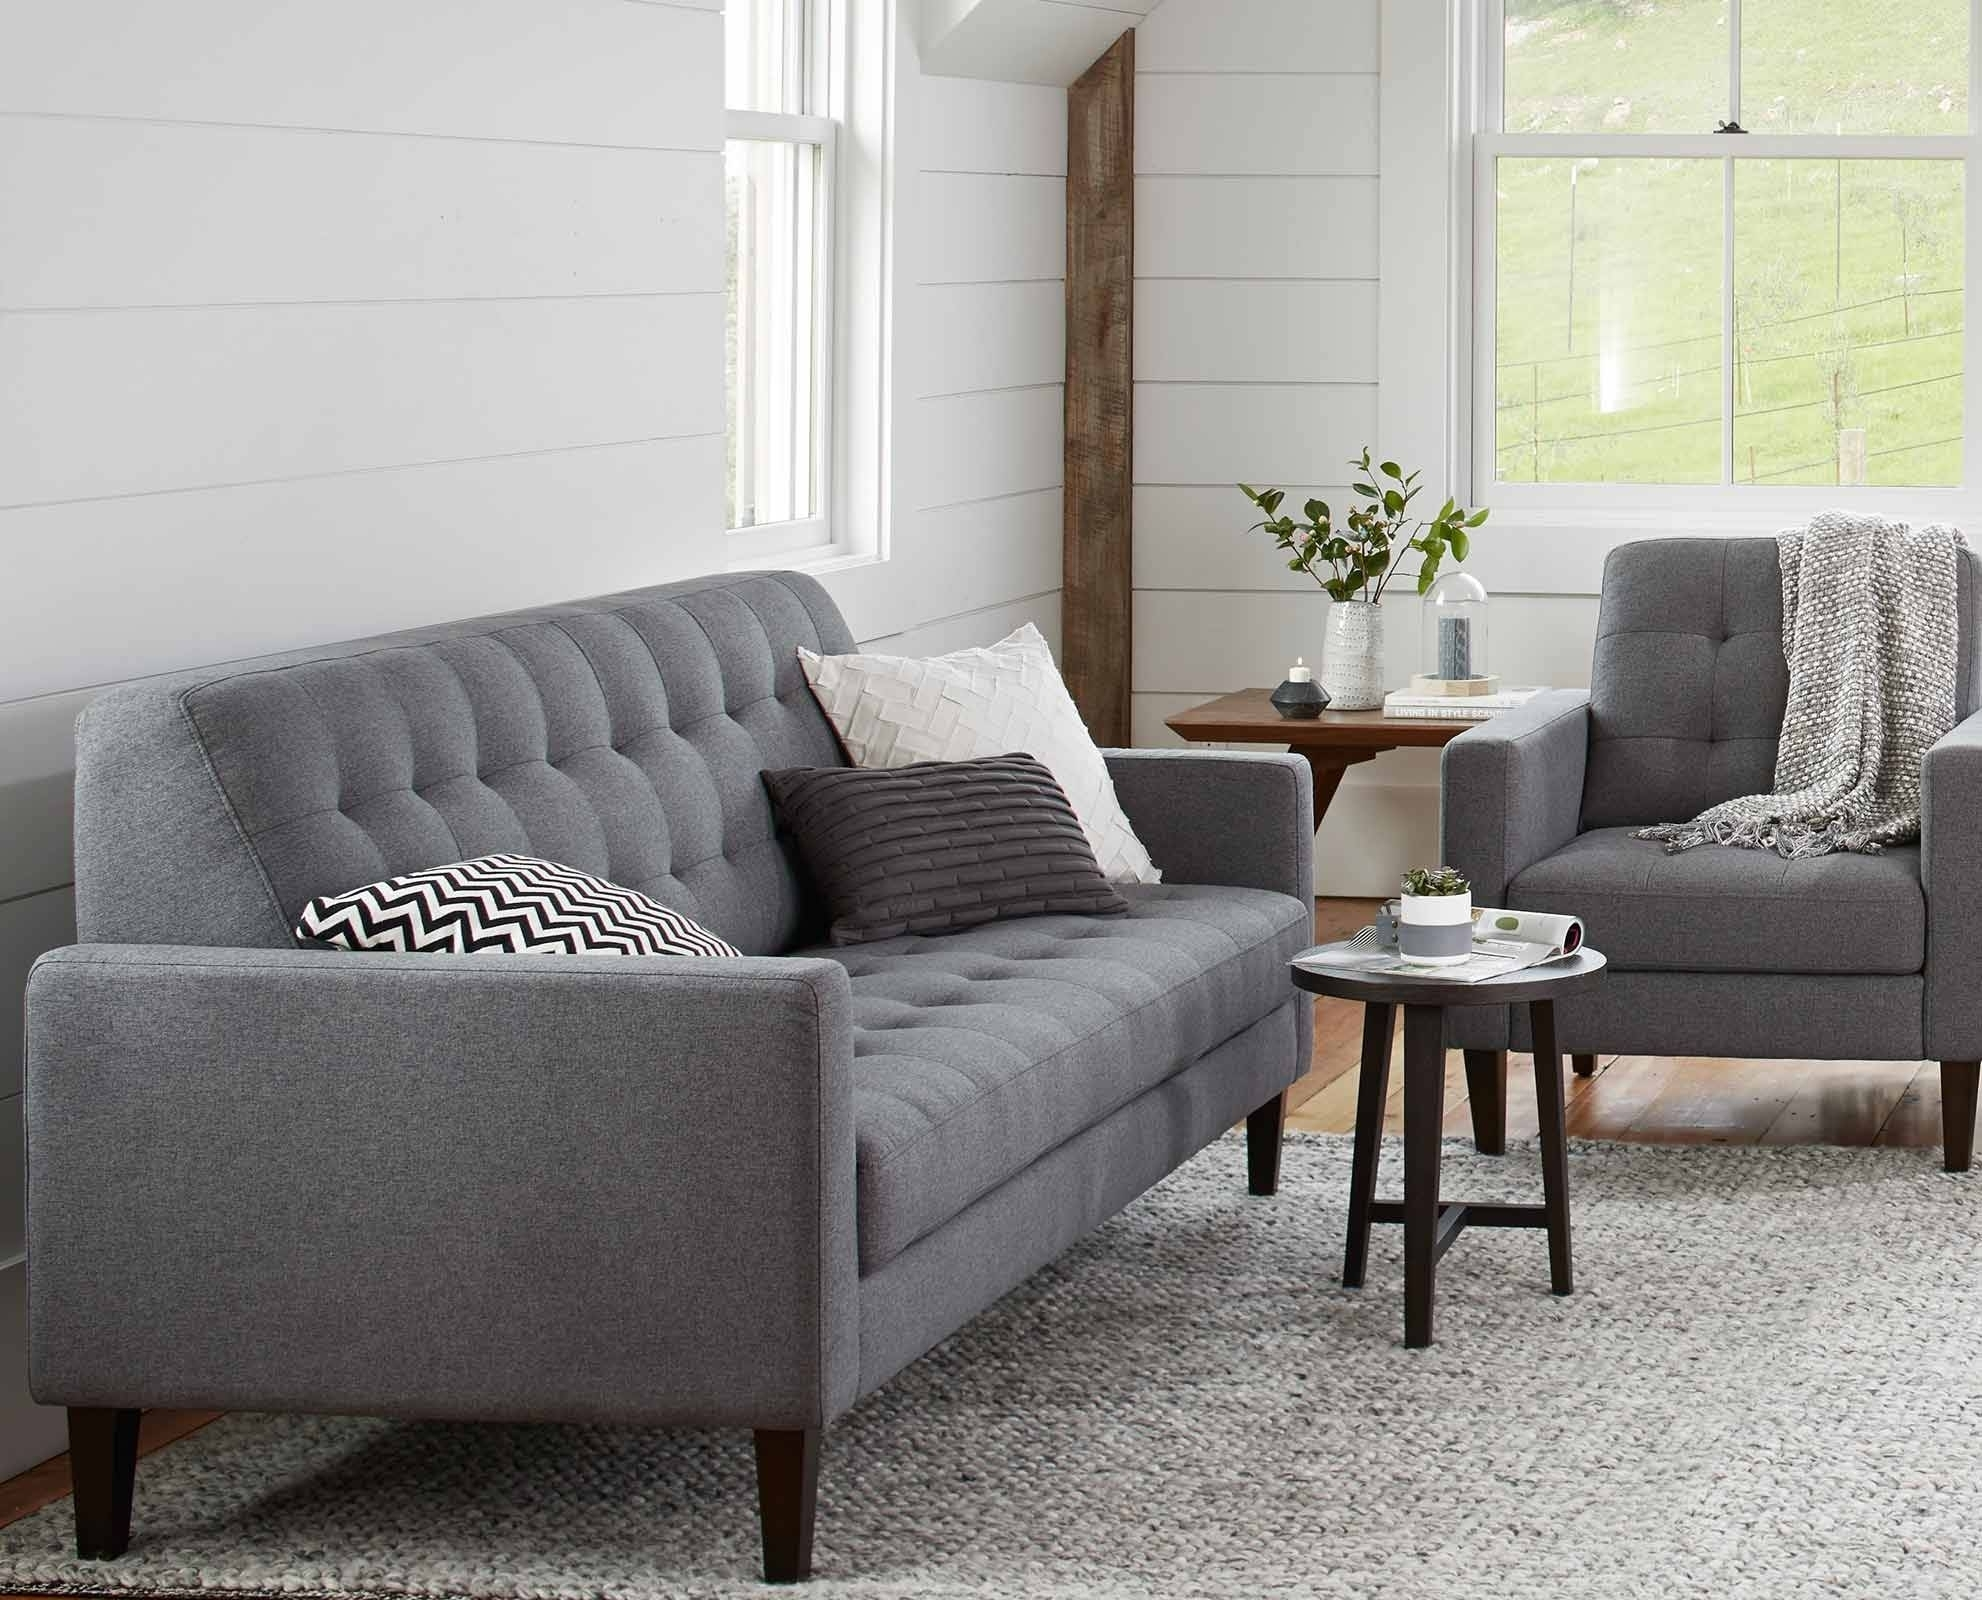 West Elm Sectional Sofa (34 Photos) | Clubanfi Throughout West Elm  Sectional Sofas (